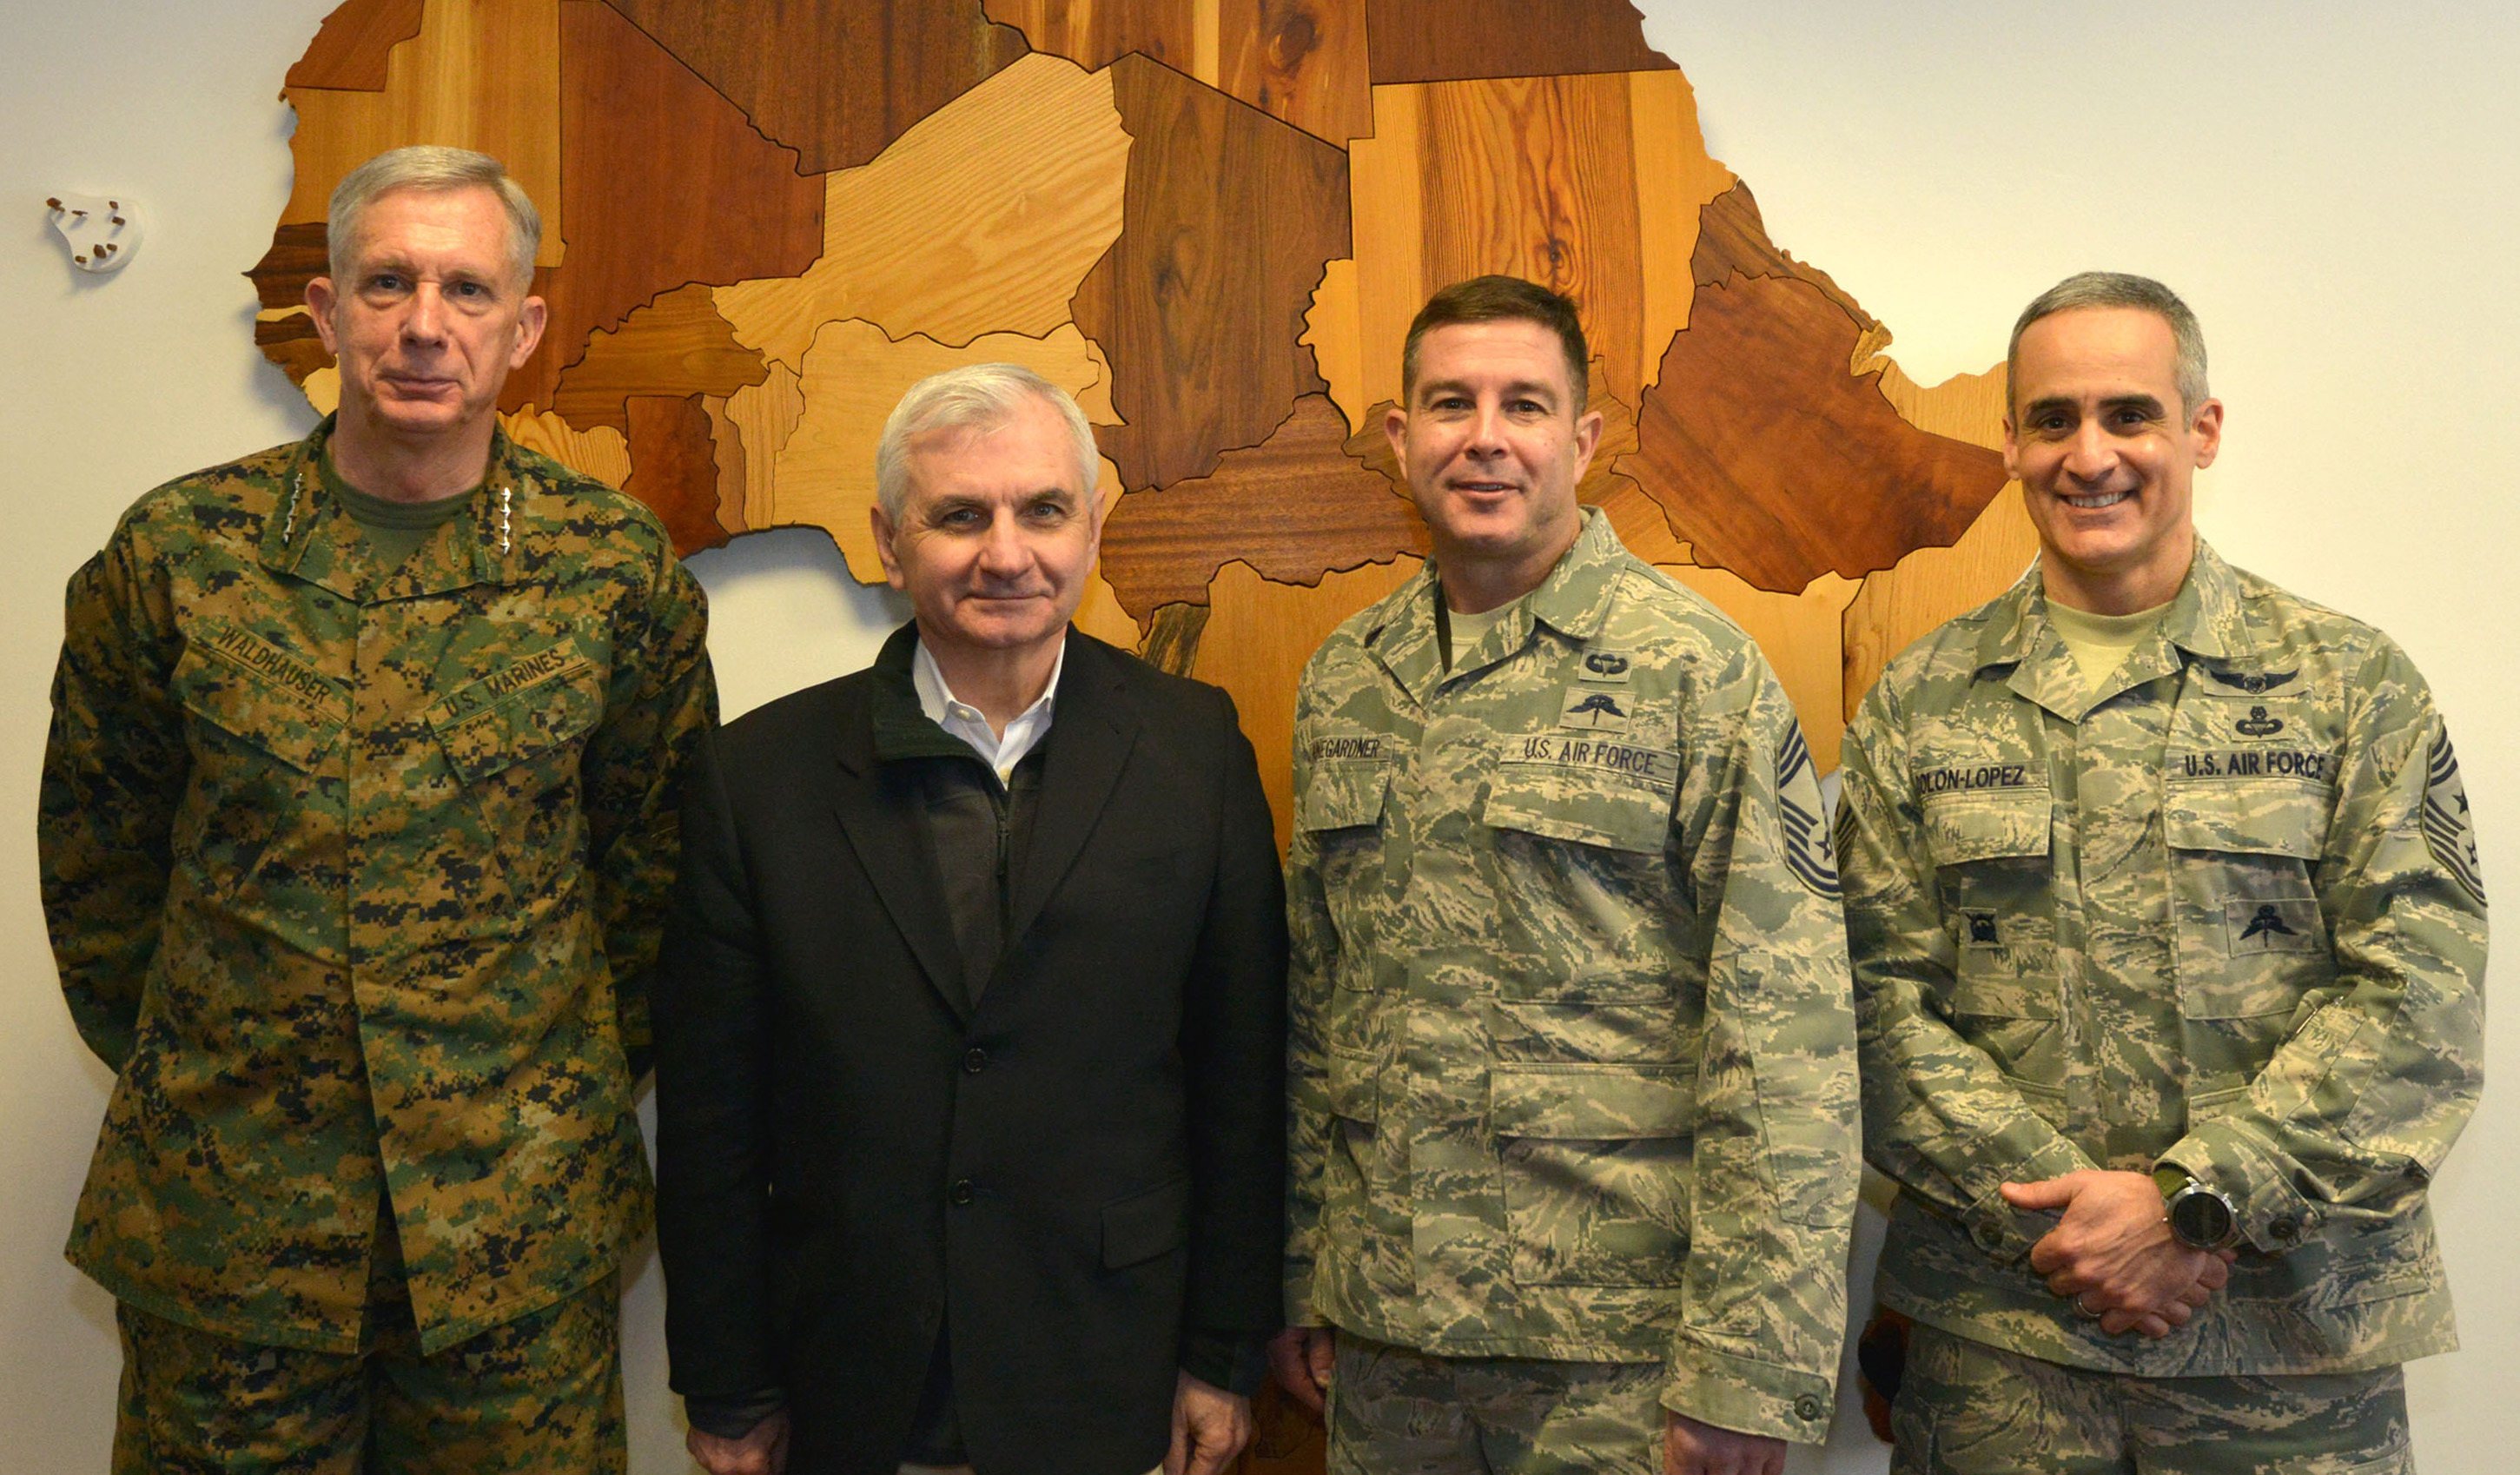 STUTTGART, Germany - U.S. Sen. Jack Reed (D-RI), ranking member, Senate Armed Forces Committee, visited the U.S. Africa Command headquarters in Stuttgart, Germany Feb. 23, 2018. During the visit, he met with senior command leadership and received updates and briefings about AFRICOM's missions and operations.